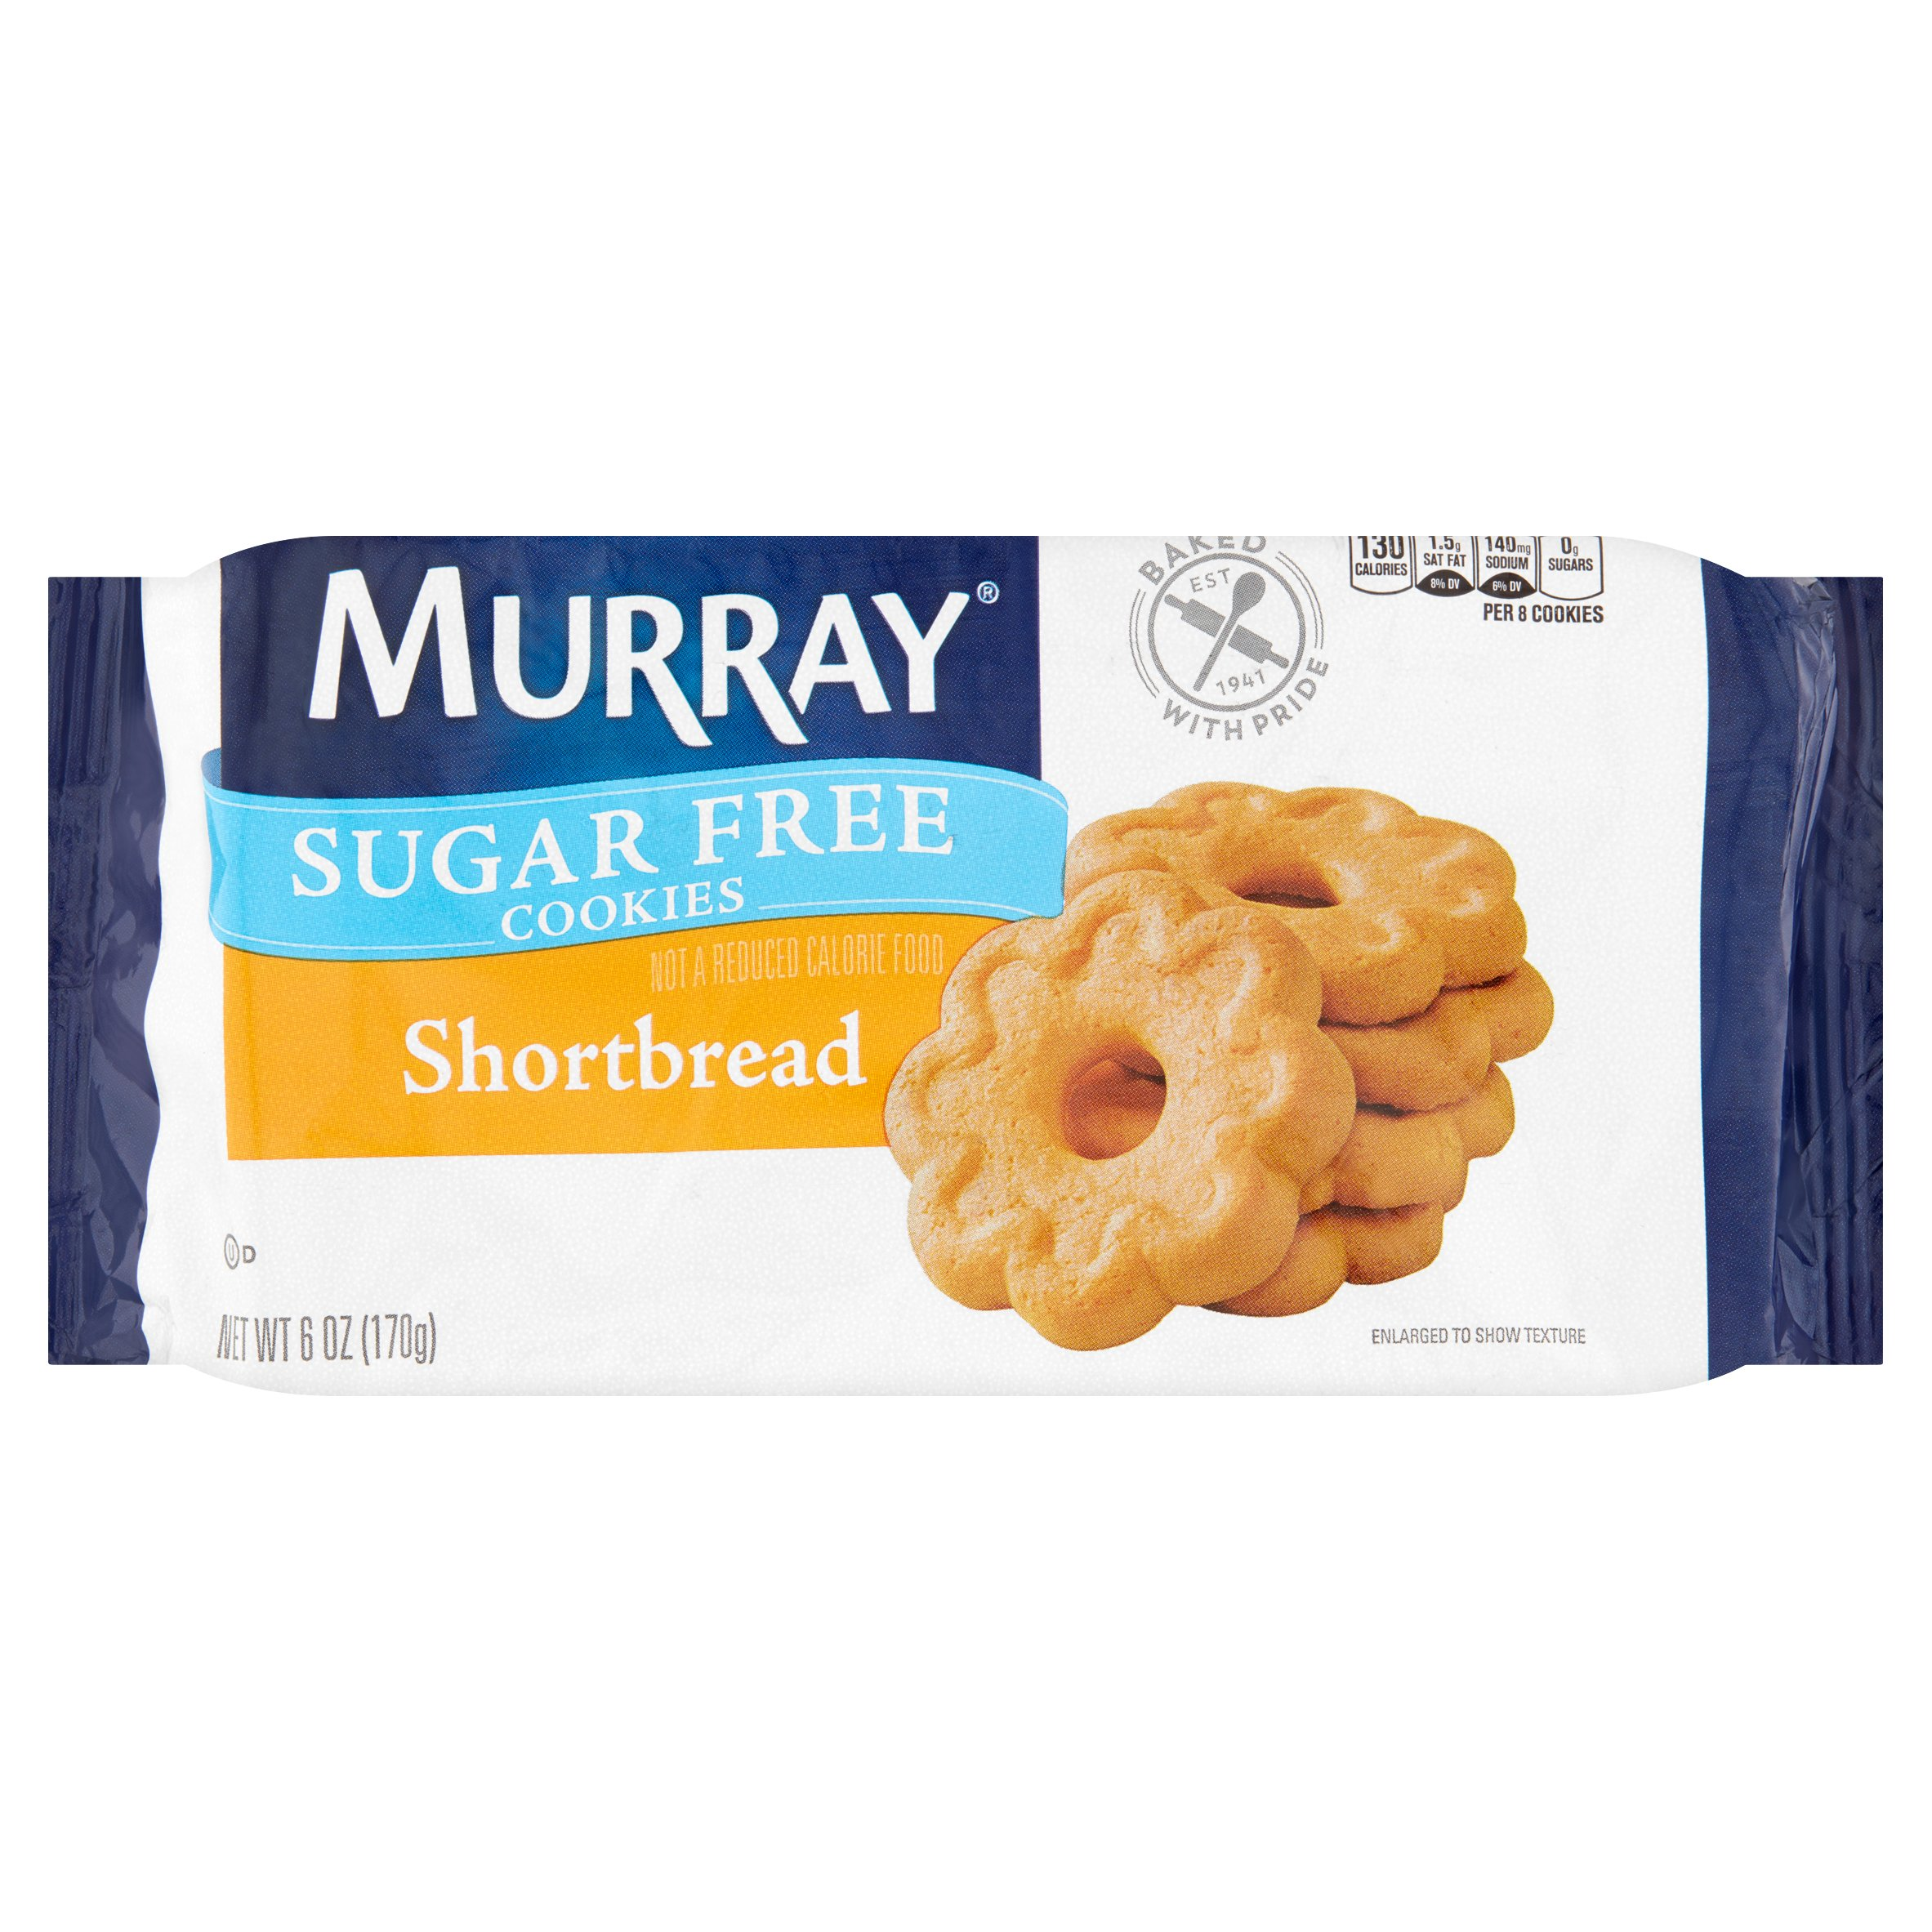 Murray Sugar Free Shortbread Snack Cookies, 6 oz